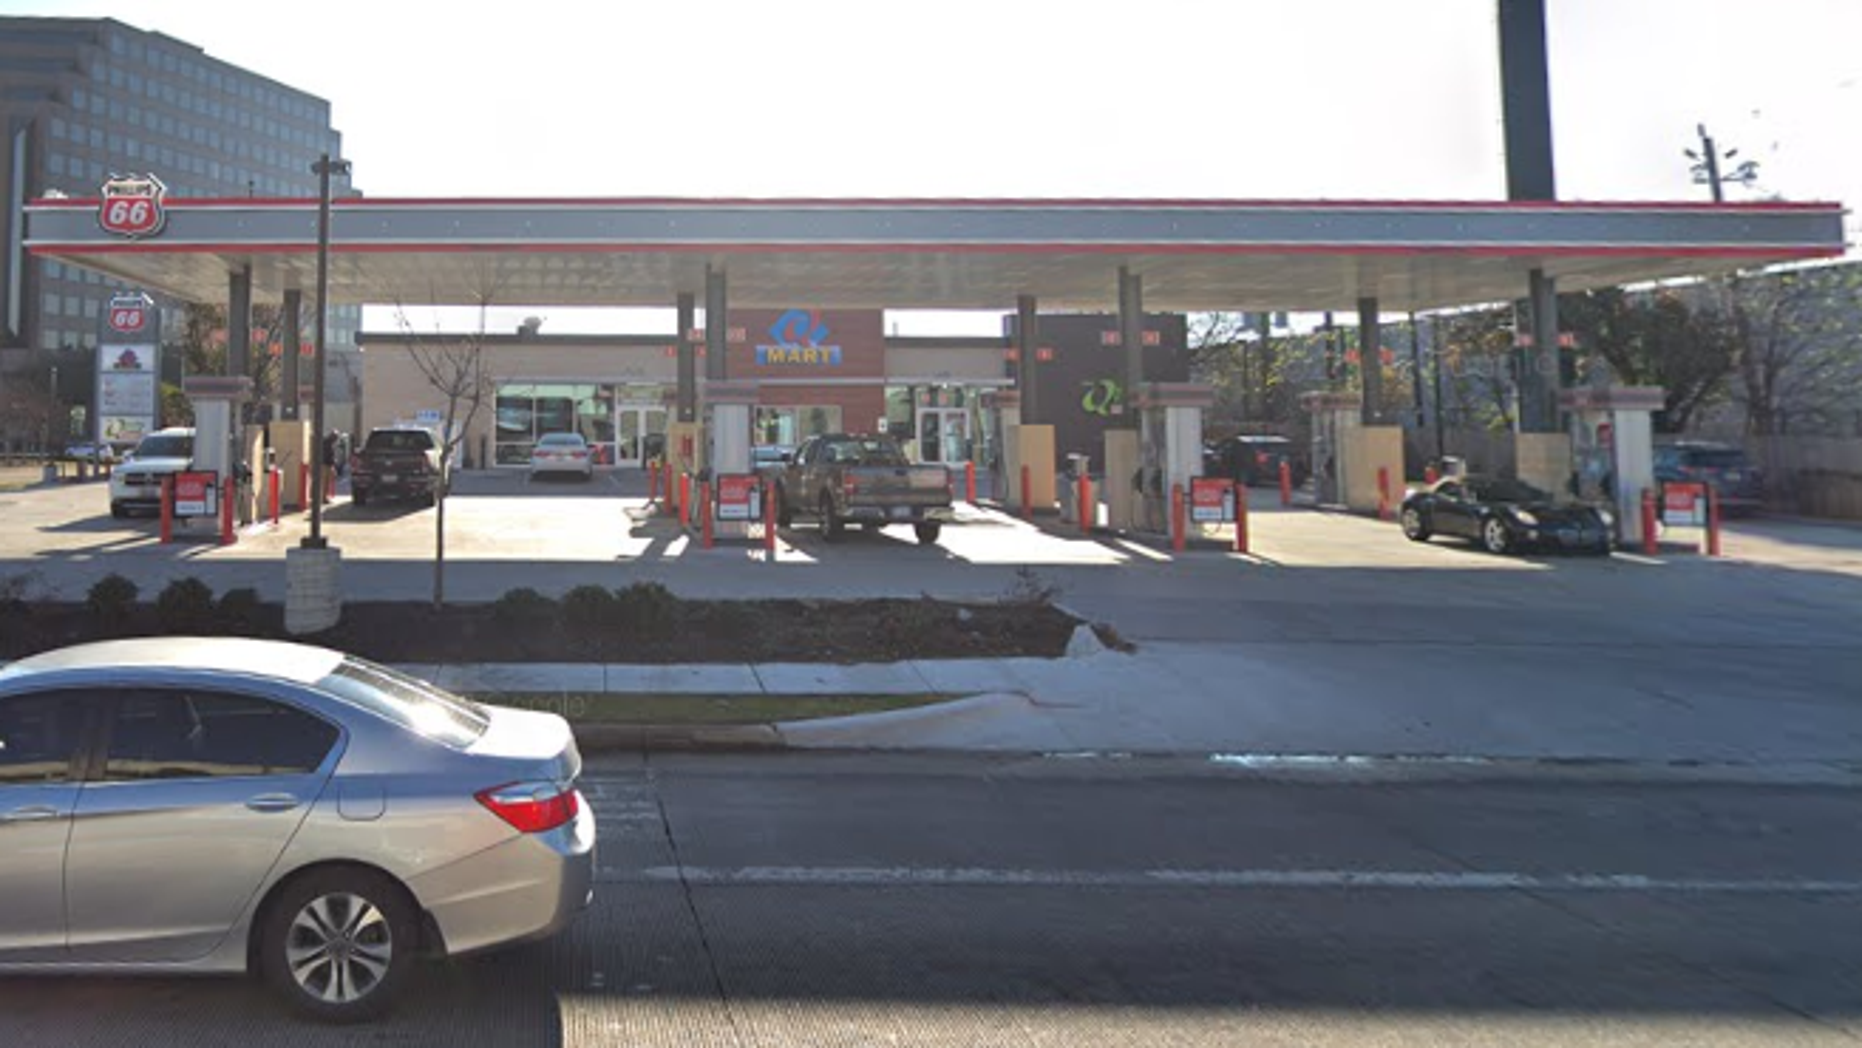 A father pulled into a gas station in western Houston on Wednesday after his 18-month-old son was shot in an apparent road rage incident, police said.